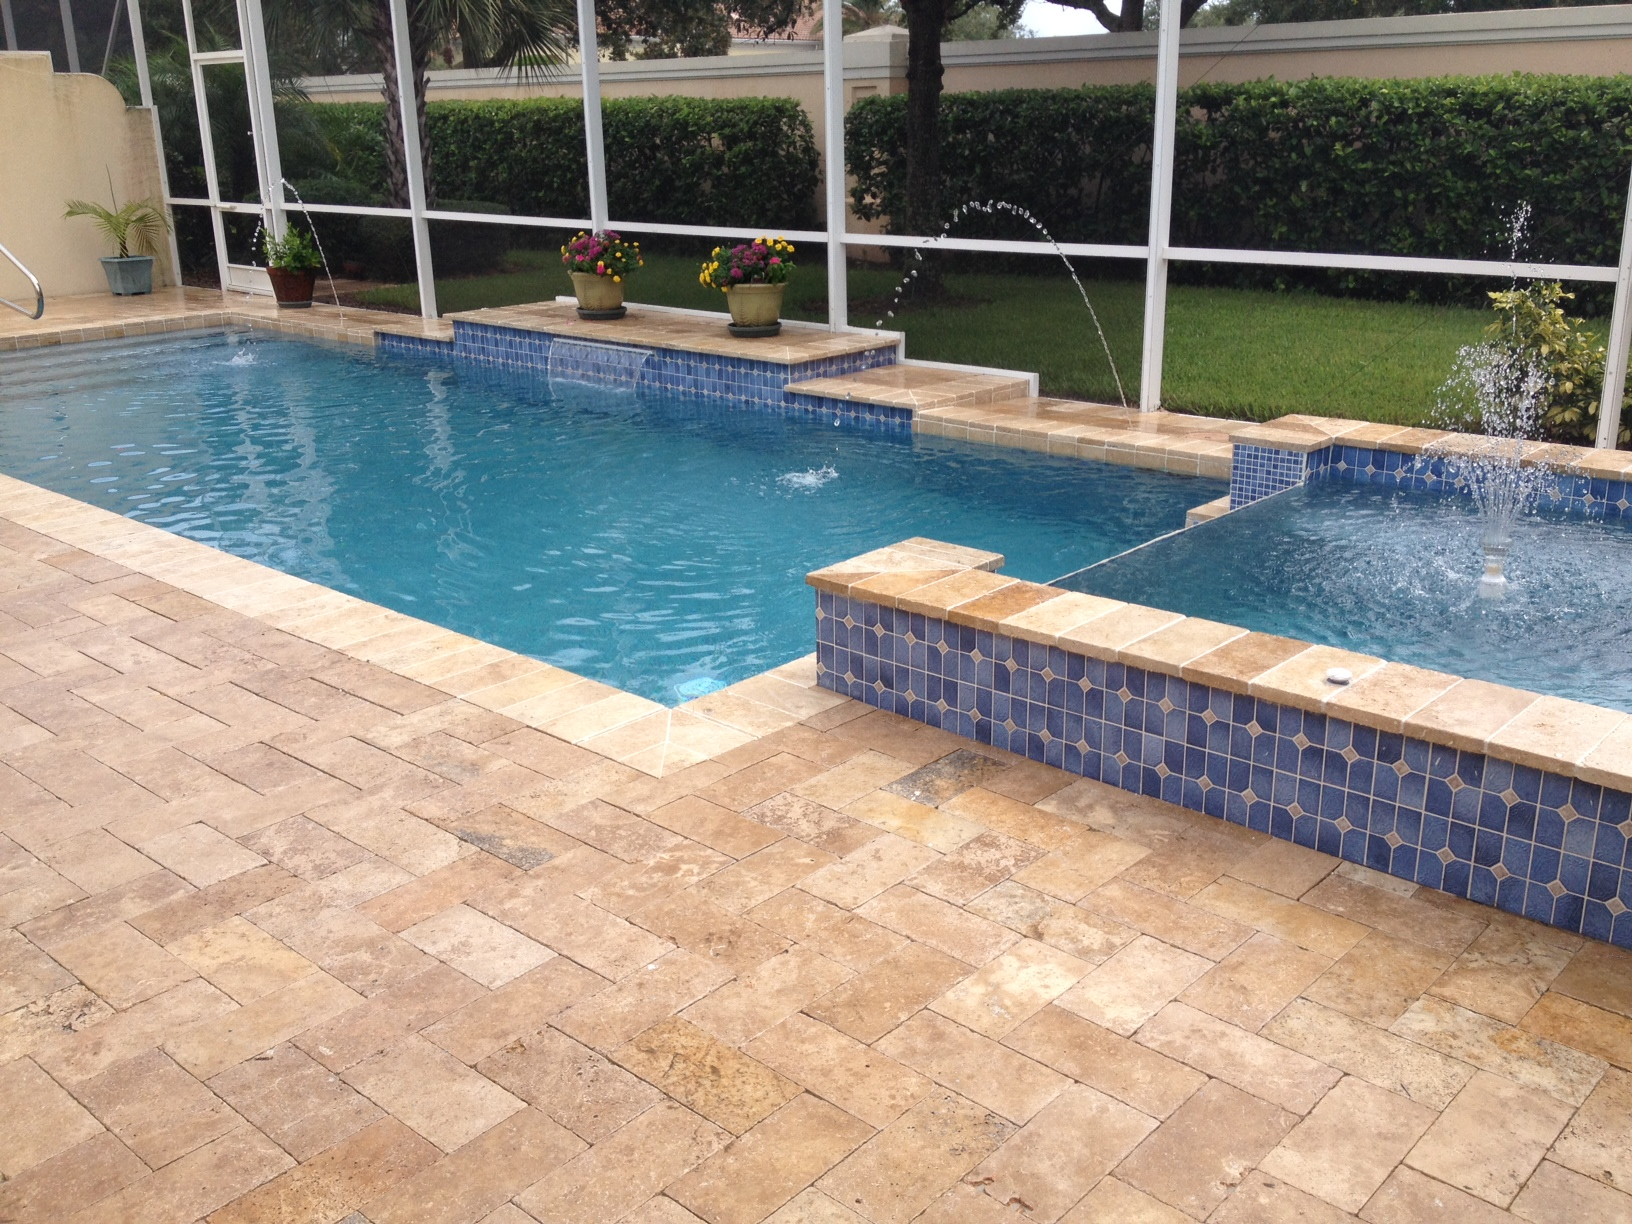 honed ivory travertine pavers pool deck natural ivory travertine pavers two  level small swimming pool flowers